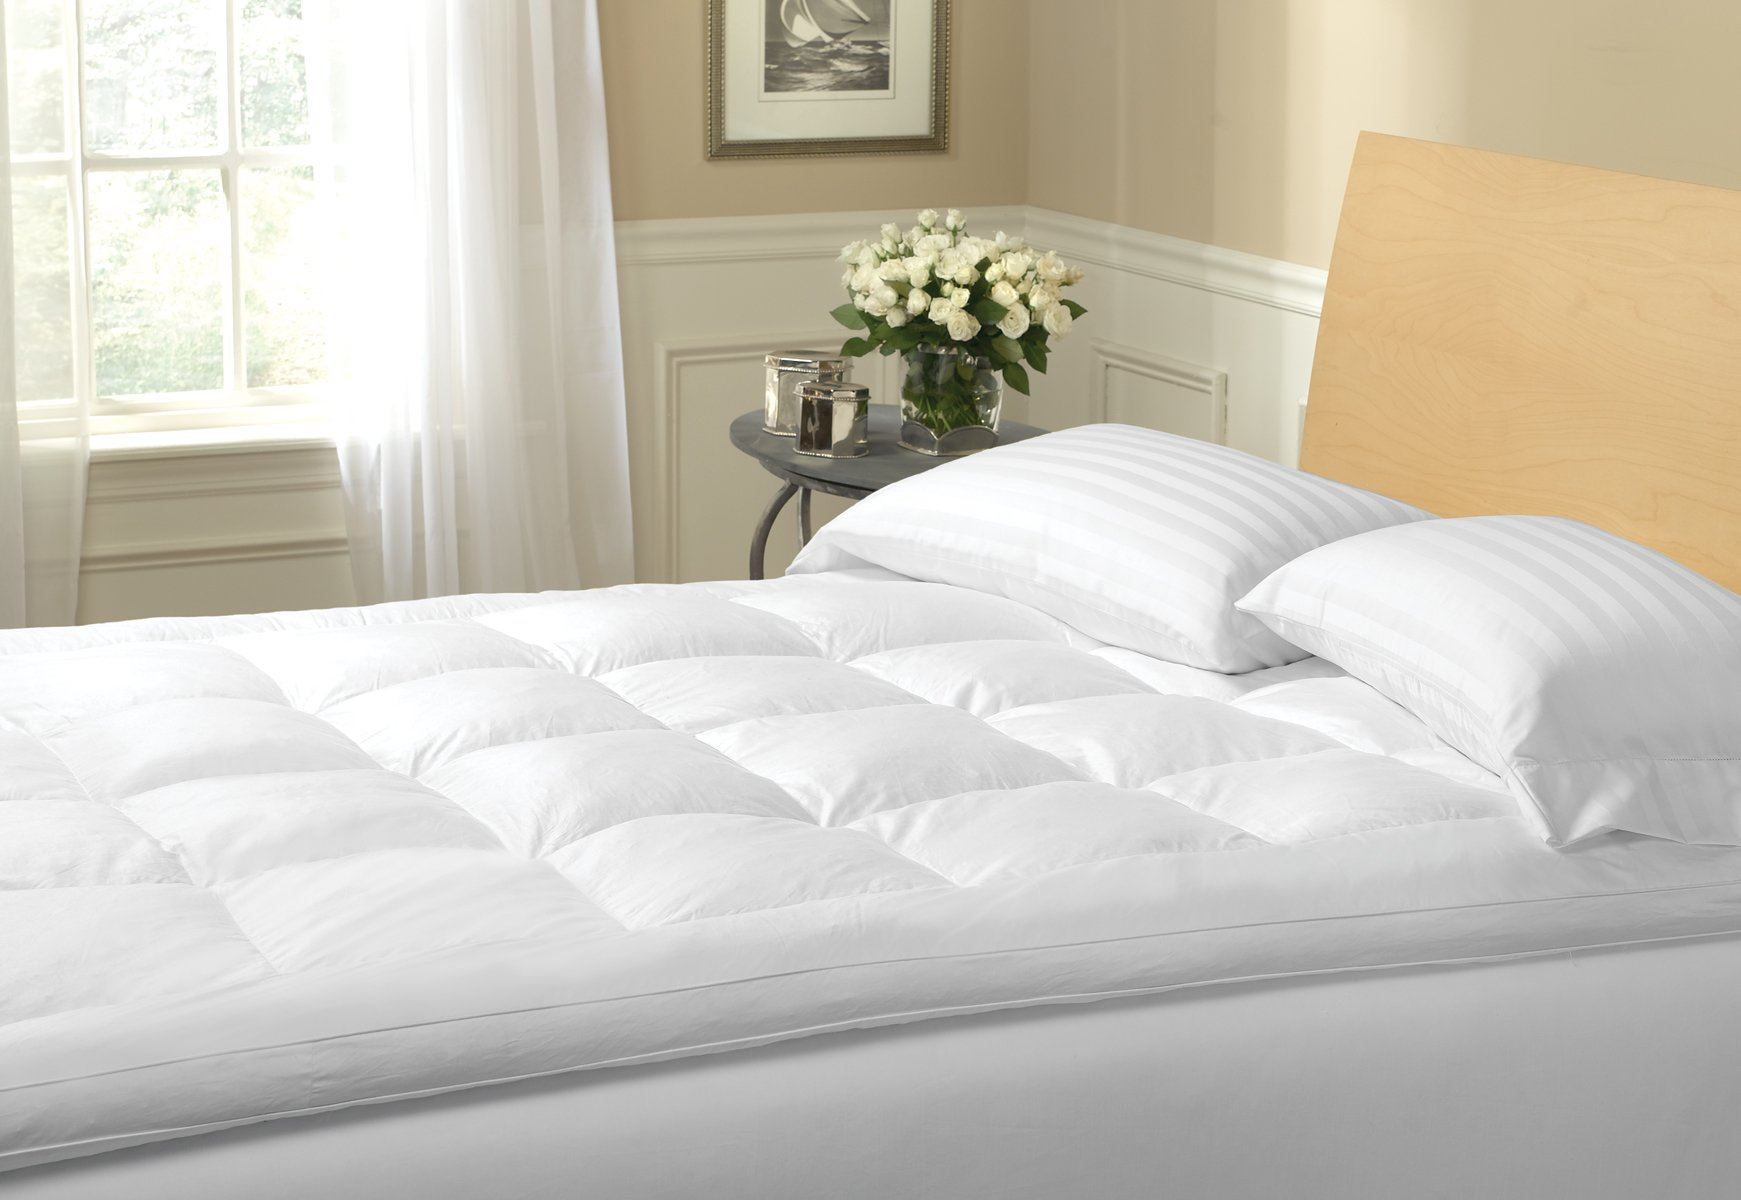 Feather Mattress Topper Review & Top 3 Toppers The Best